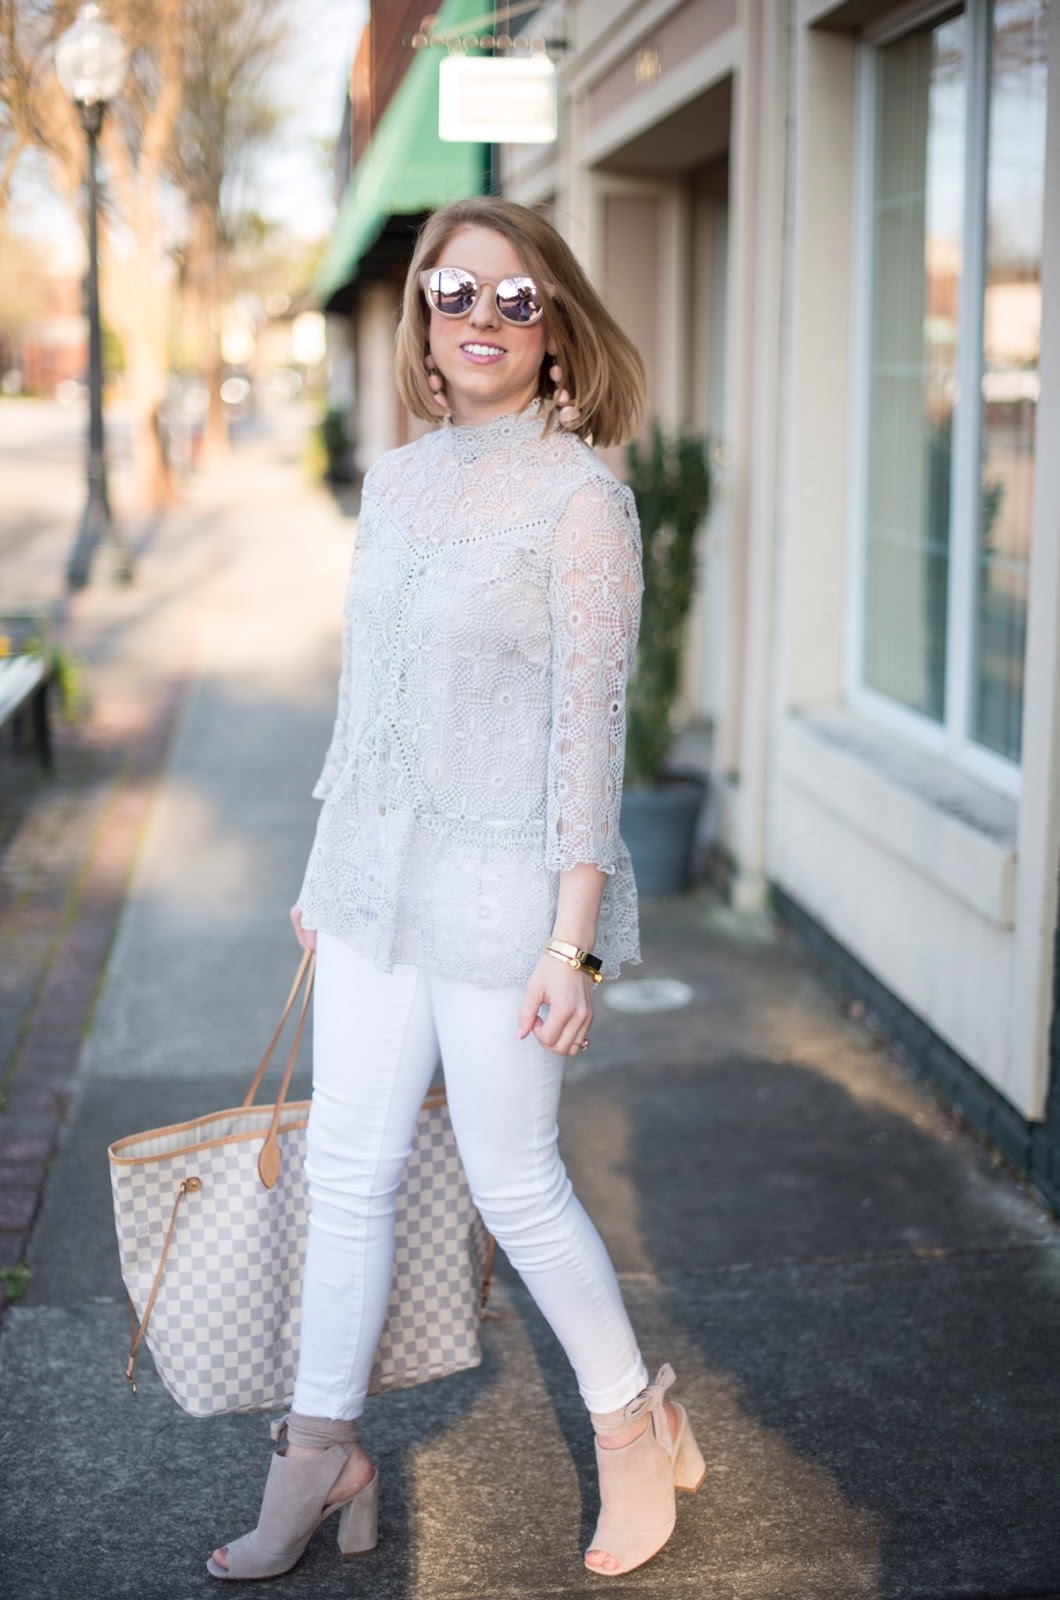 Blush & Grey - Click through to see more on Something Delightful Blog!